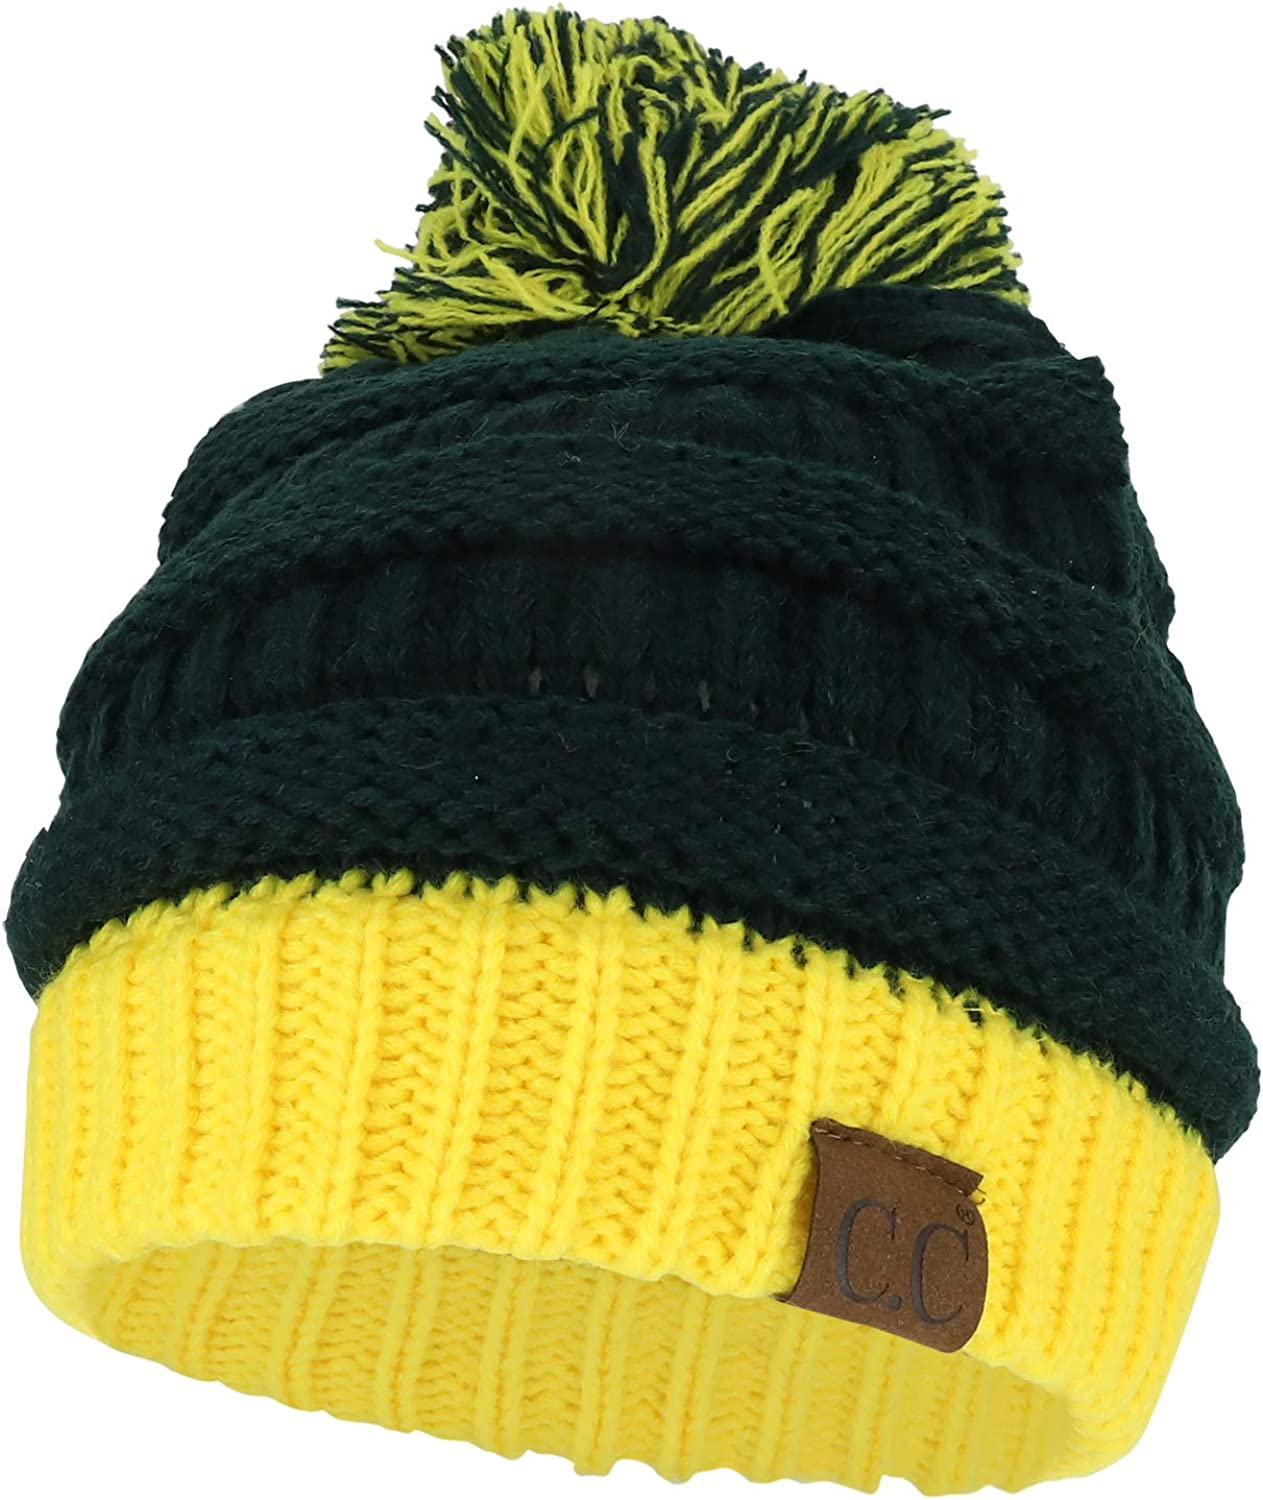 Trendy Apparel Shop Two Tone Cable Knit Winter Pom Beanie